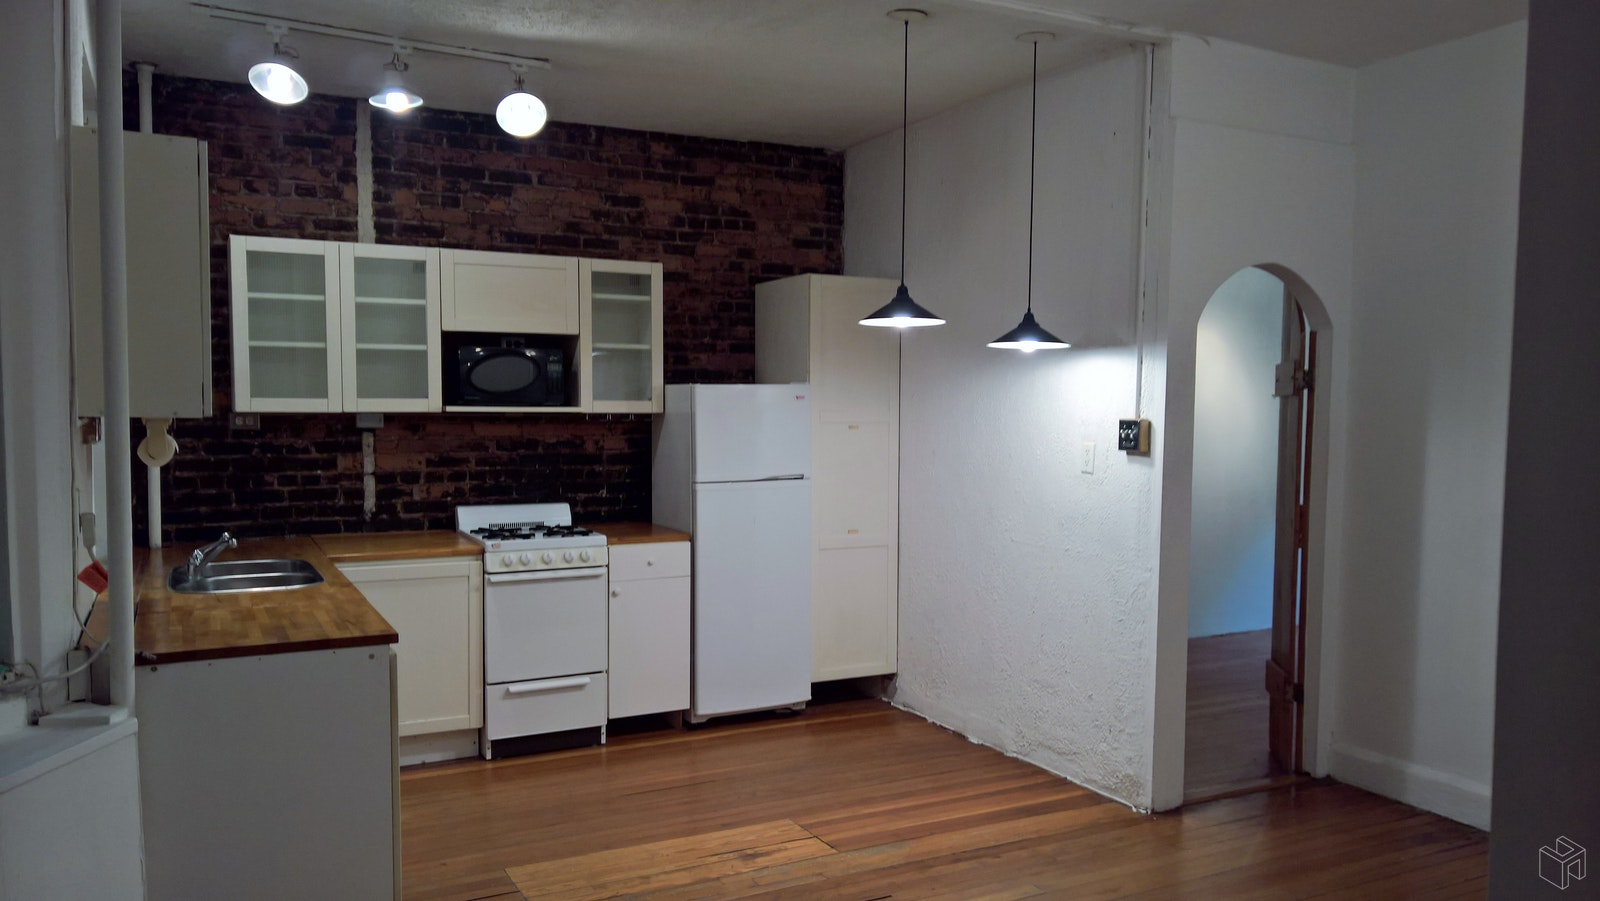 149 Sullivan Street, Apt 1A, Manhattan, New York 10012